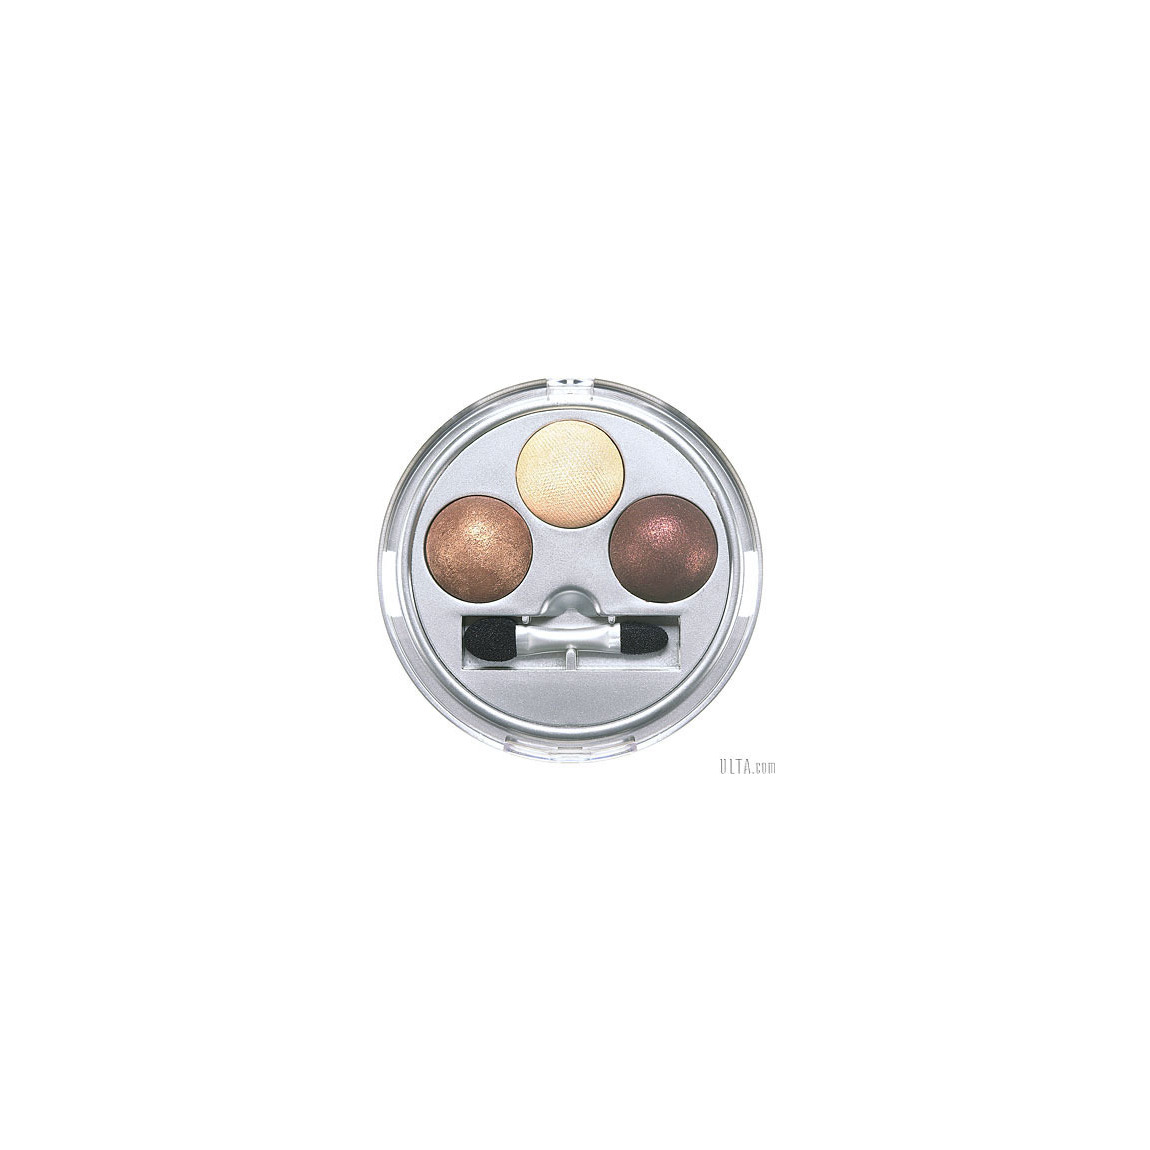 b93c17e5e46a8 Physicians Formula Baked Collection Wet Dry Eyeshadow